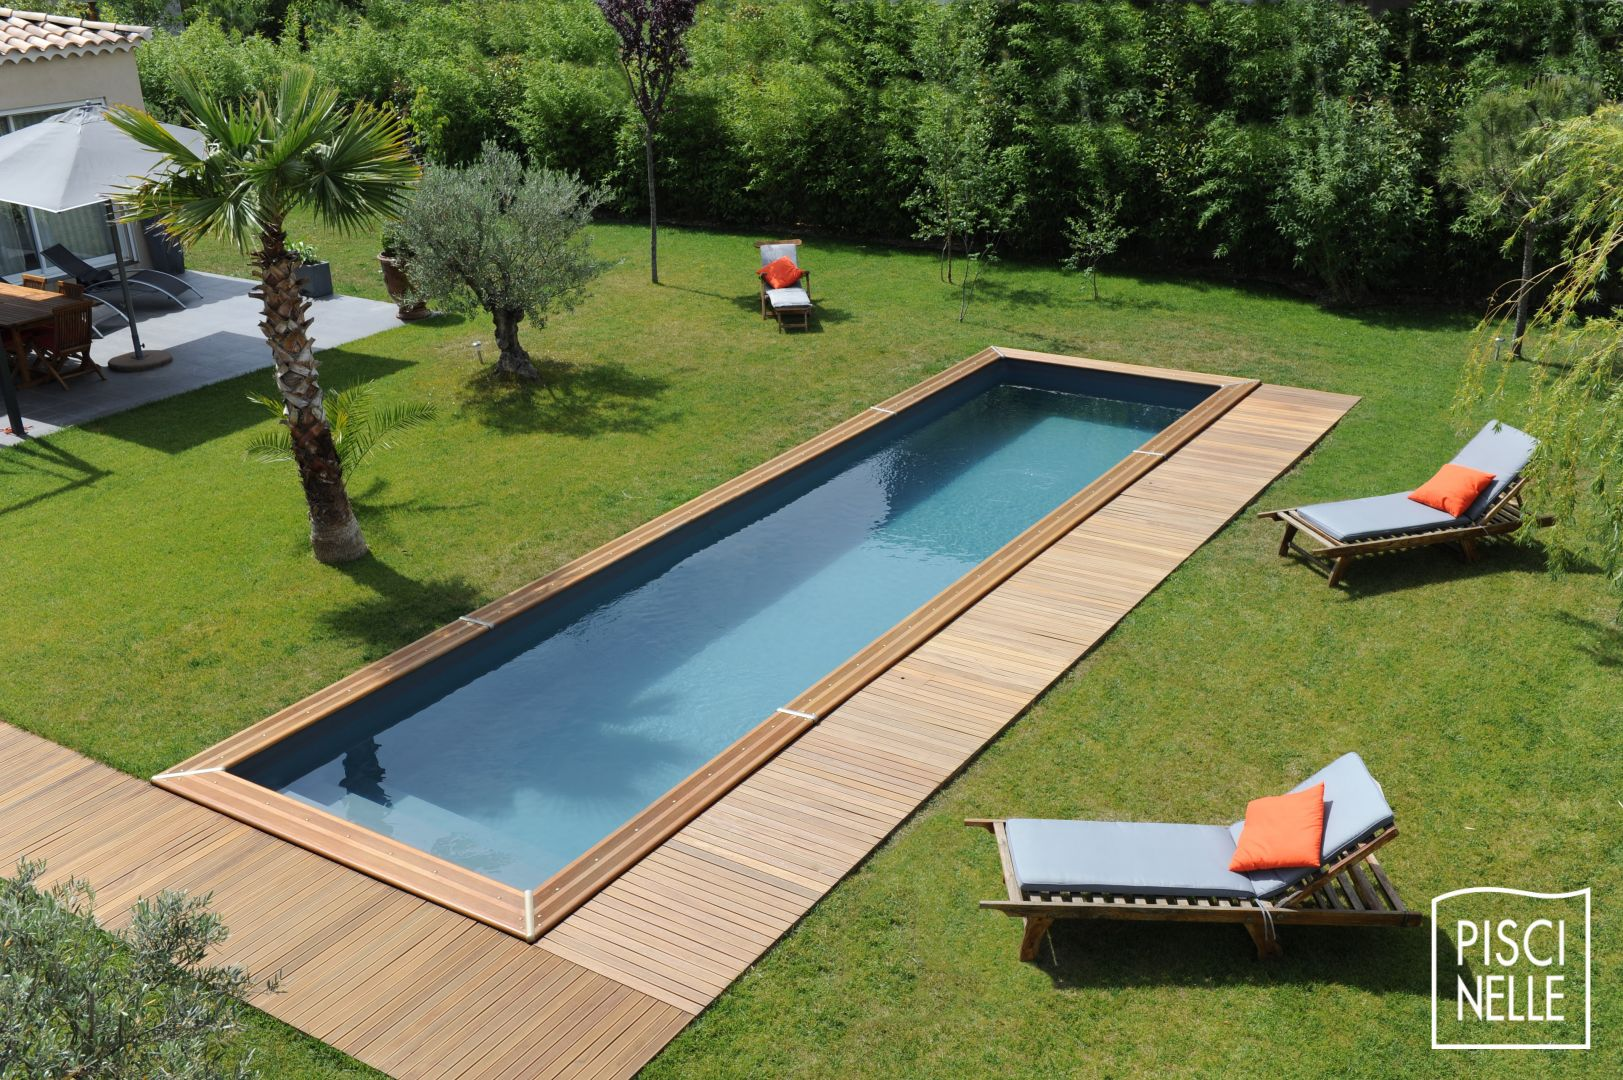 Piscine enterr e les piscines enterr es en kit par for Piscines semi enterrees